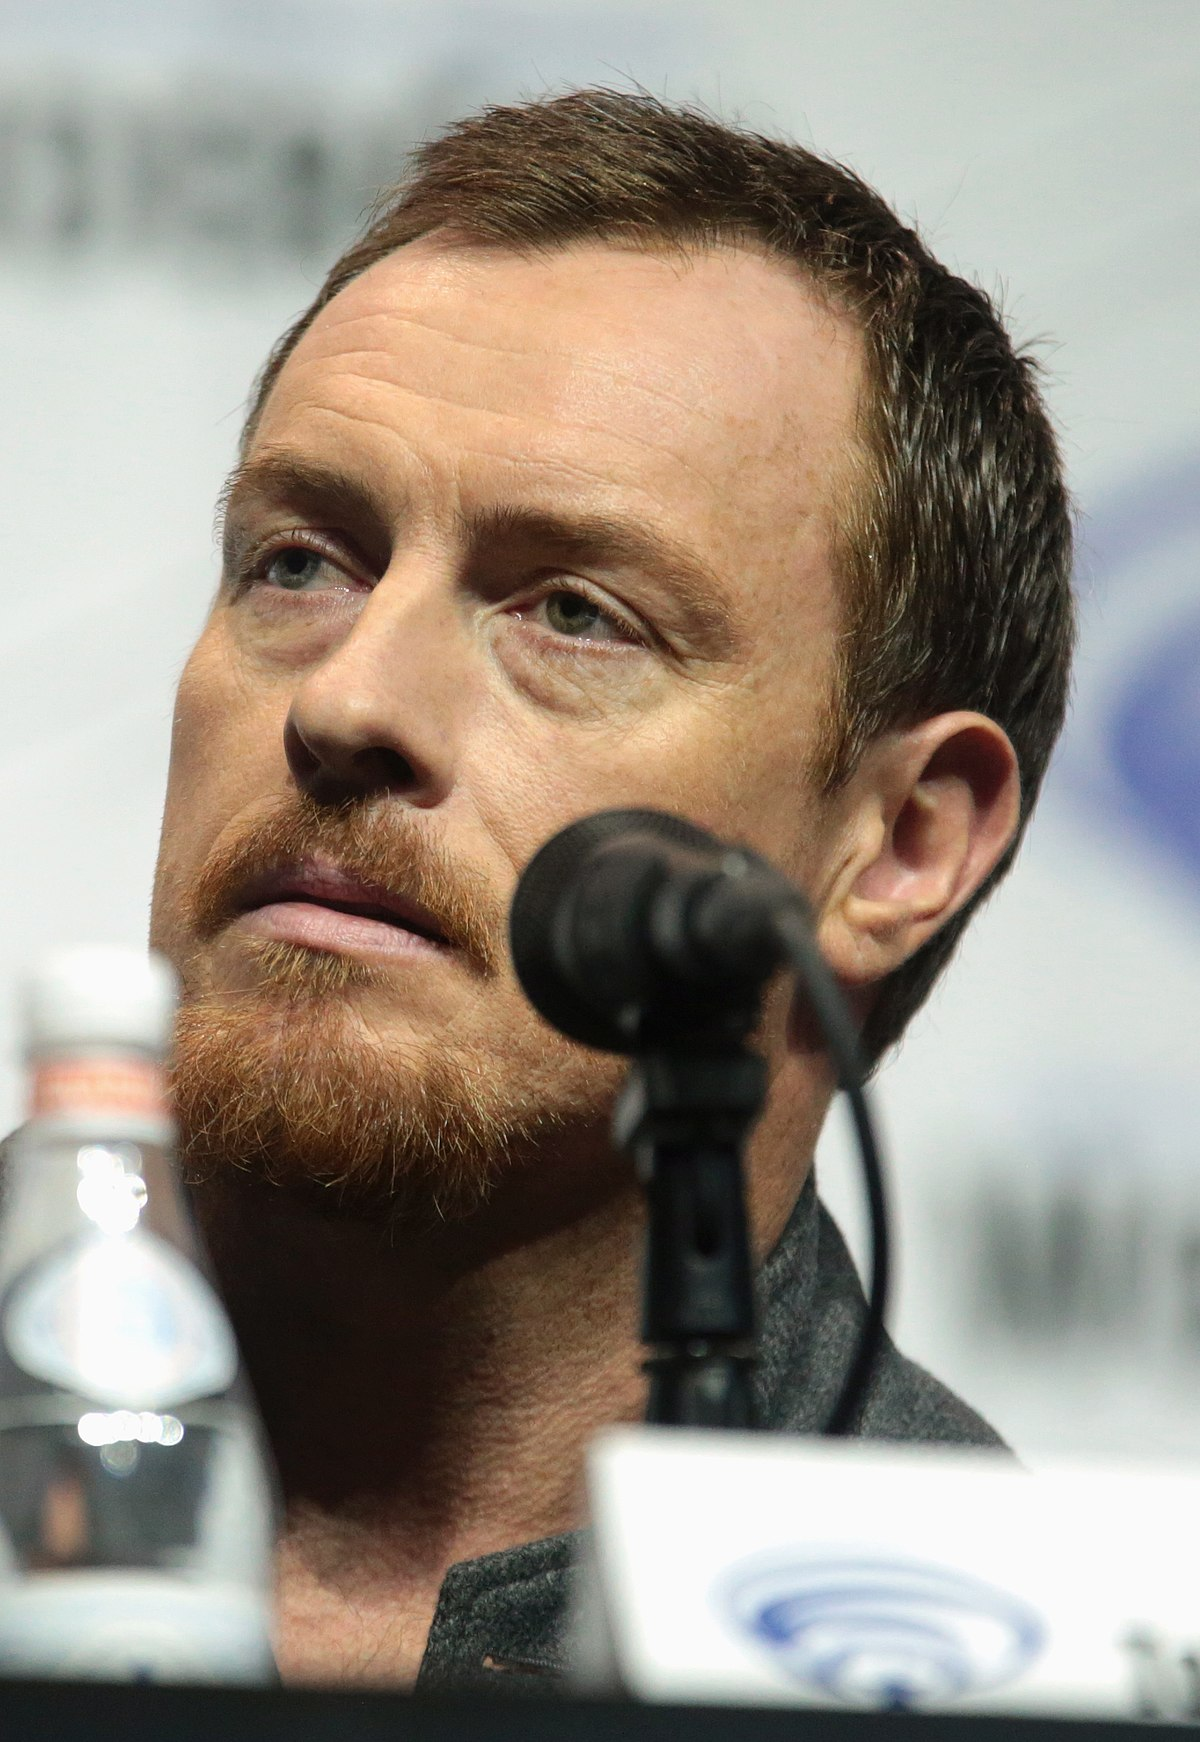 Toby Stephens (born 1969)